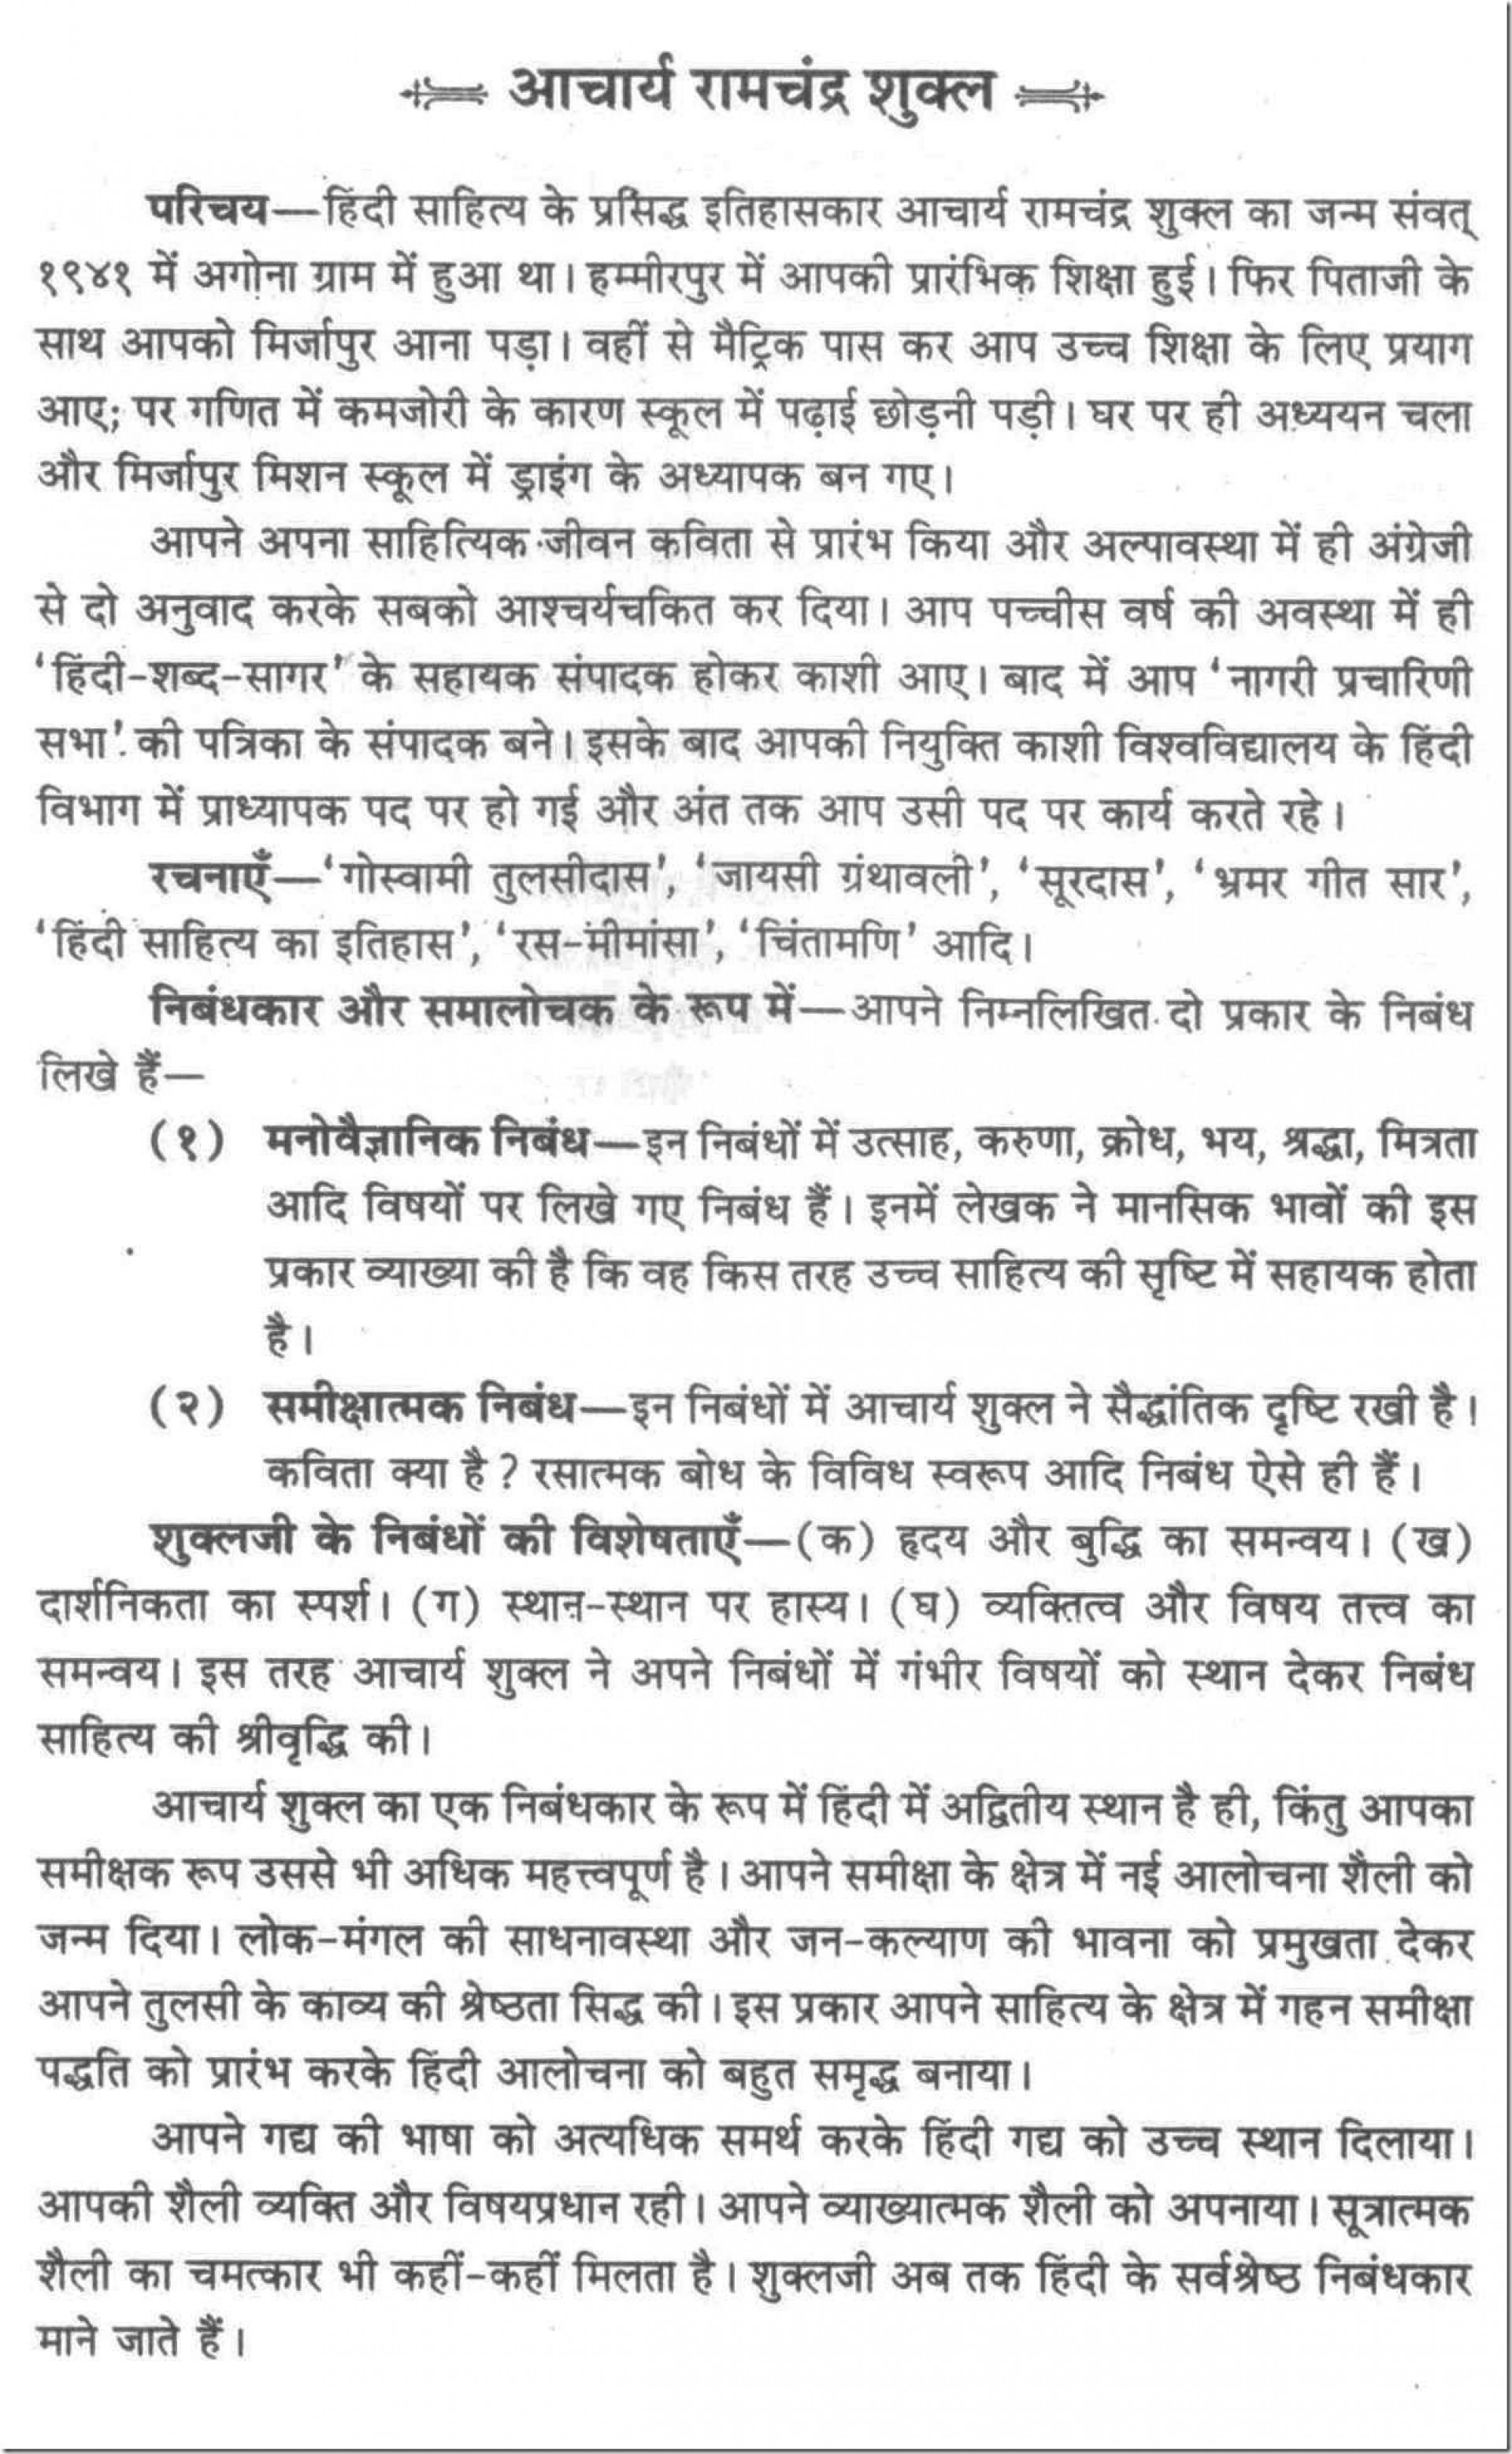 010 Essay On Helping Friend In Trouble 100018 Thumb Excellent A Narrative Hindi 1920